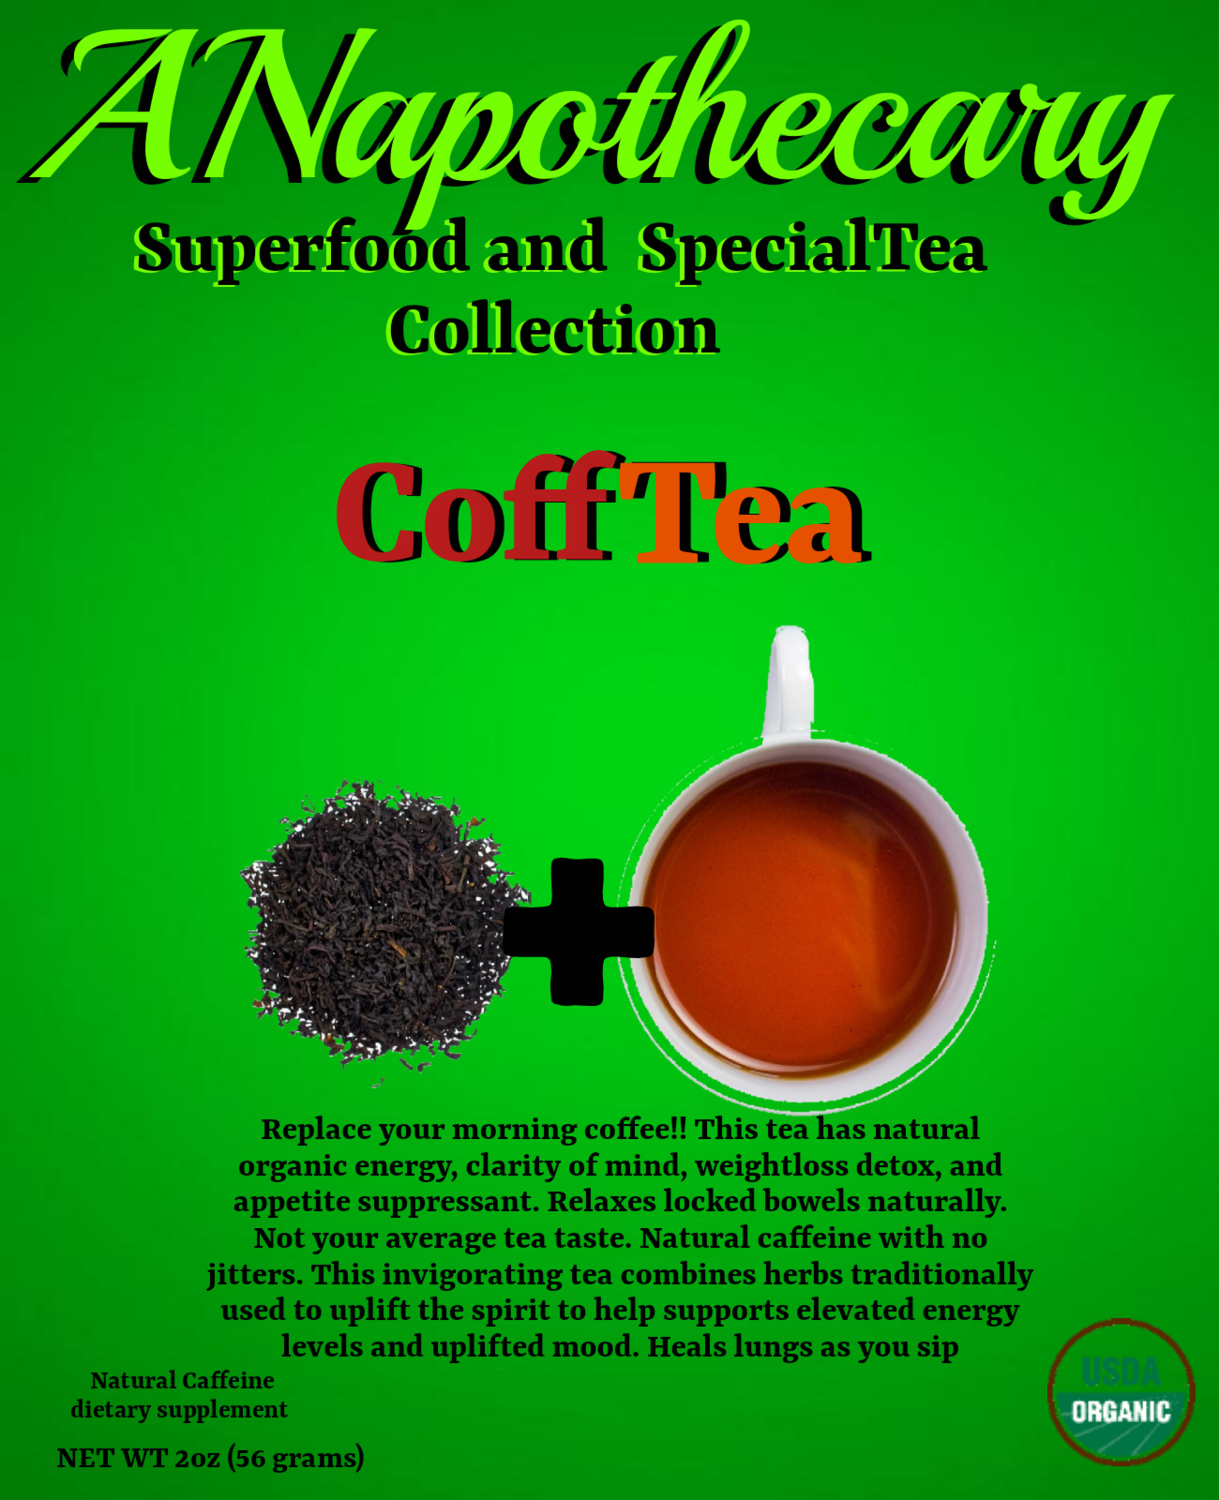 CoffTea 20 cup container. Brew like coffee.